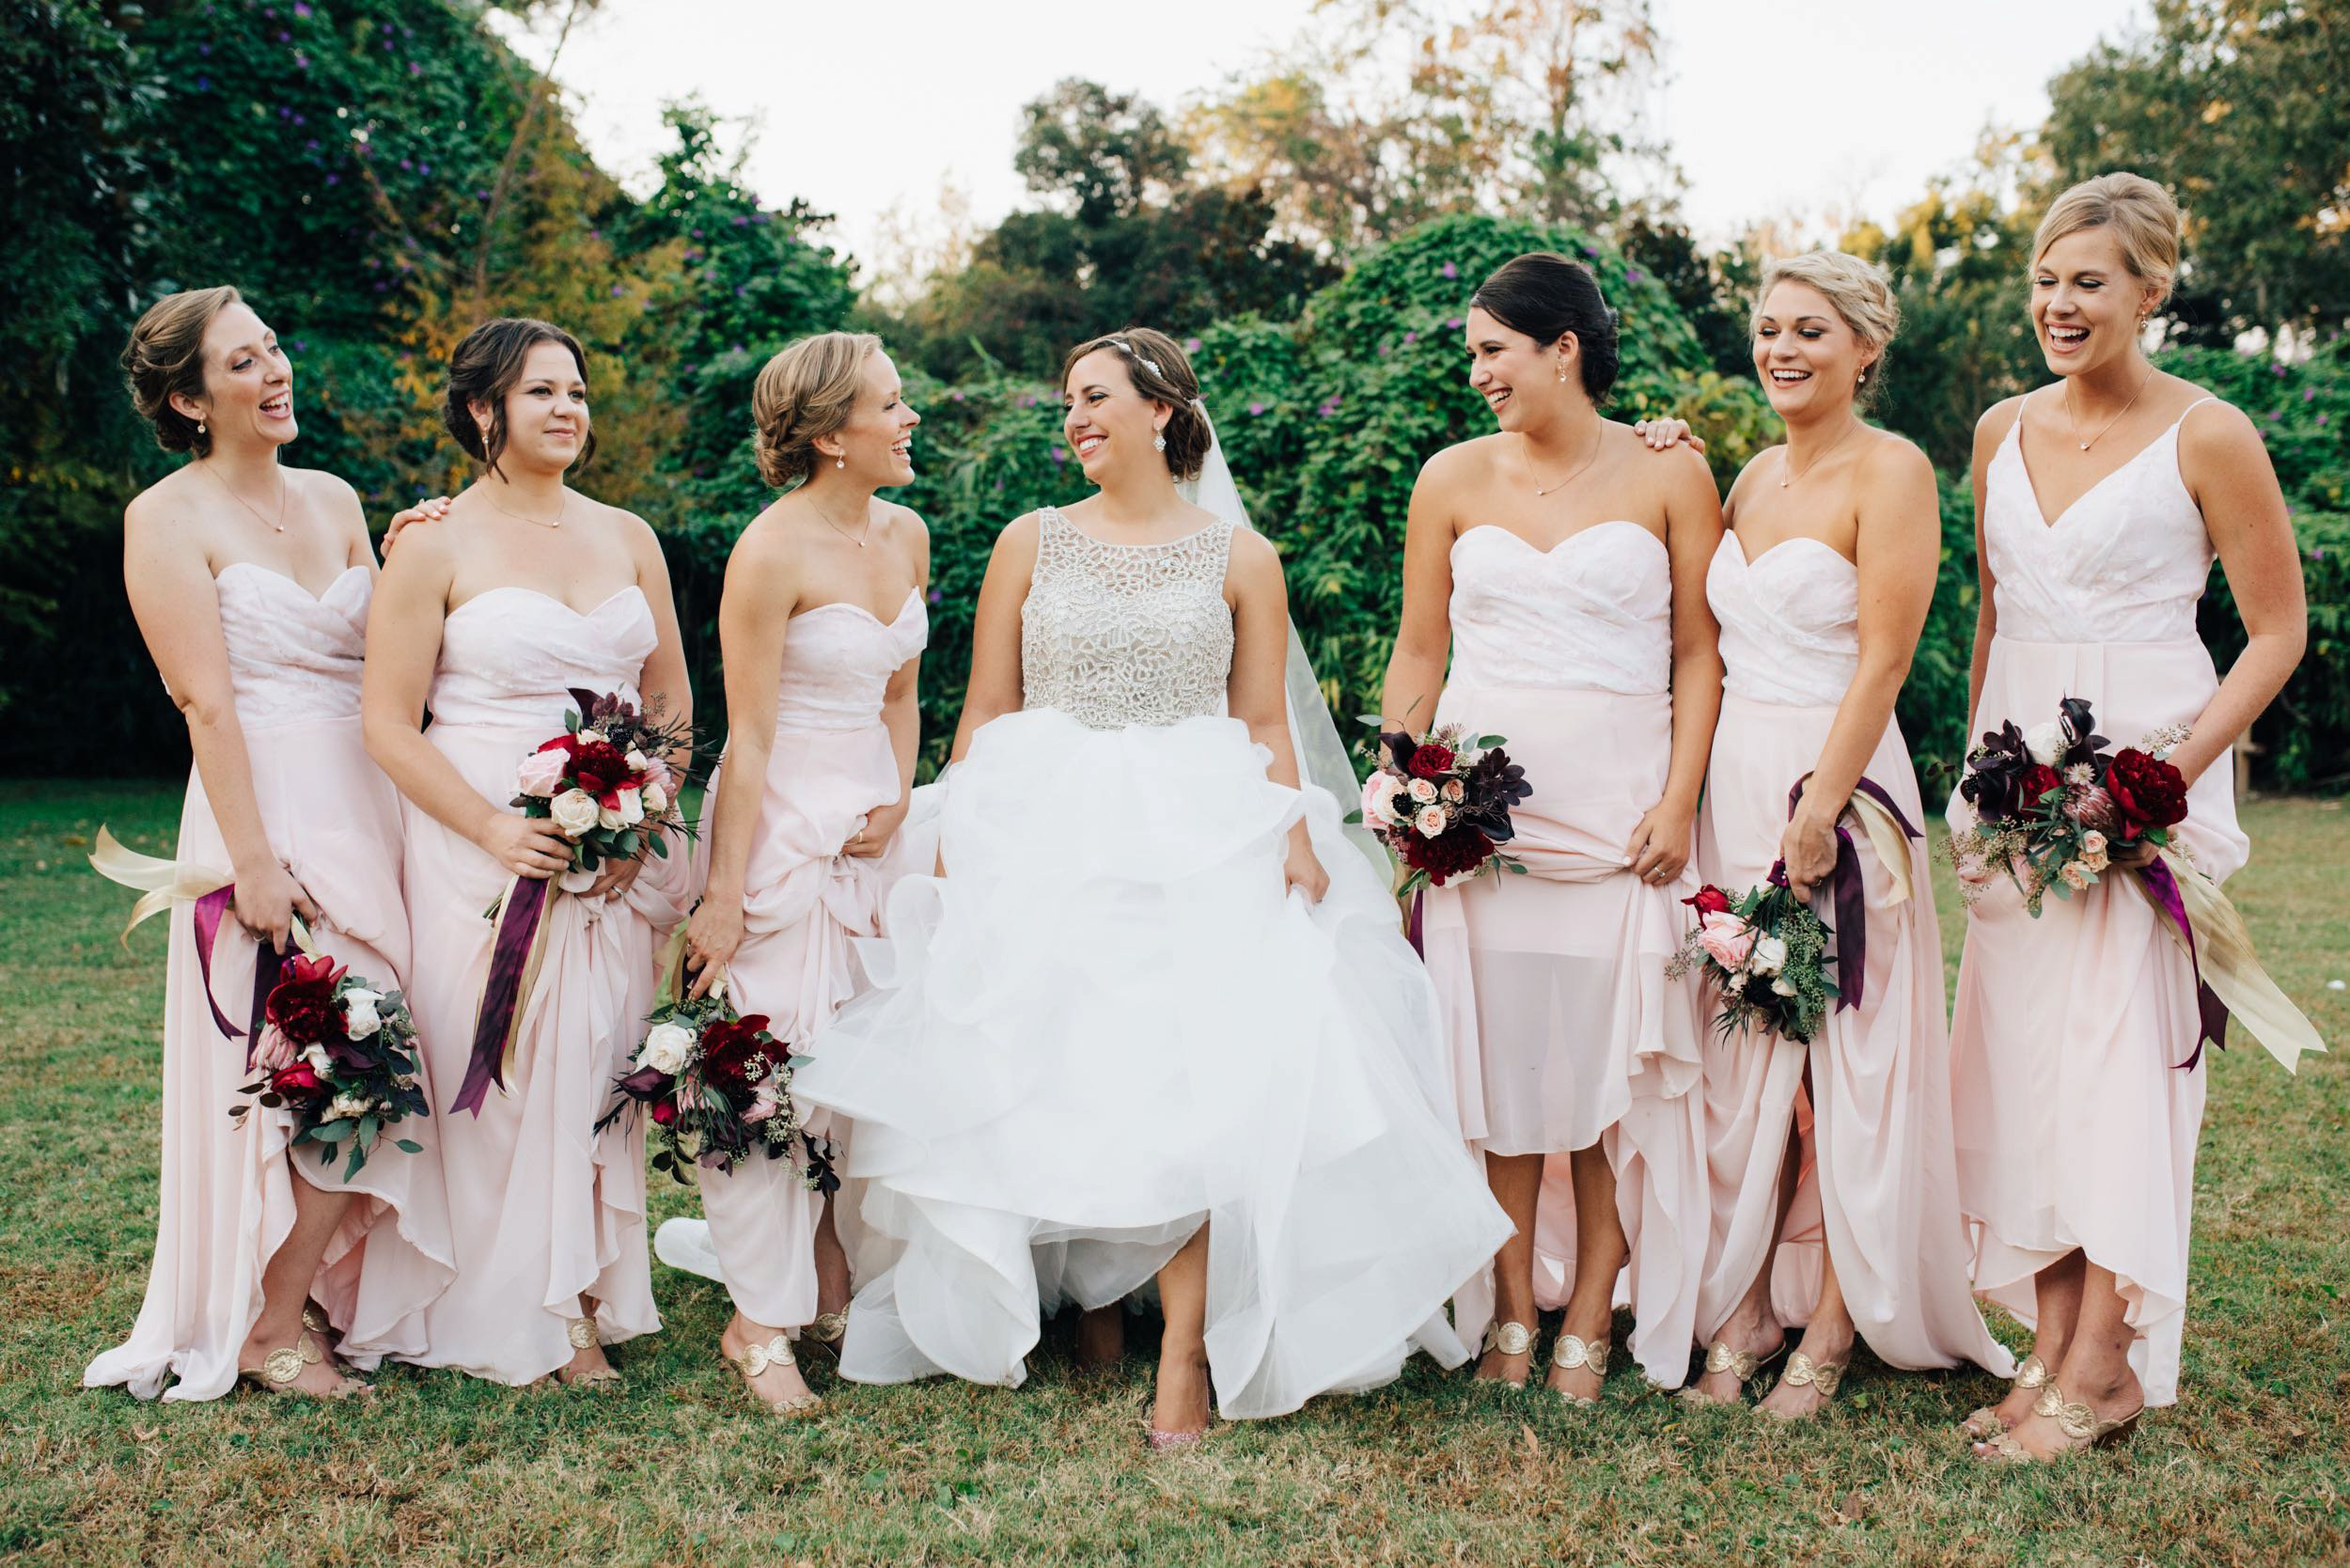 Charleston-wedding-photographer_0157.jpg